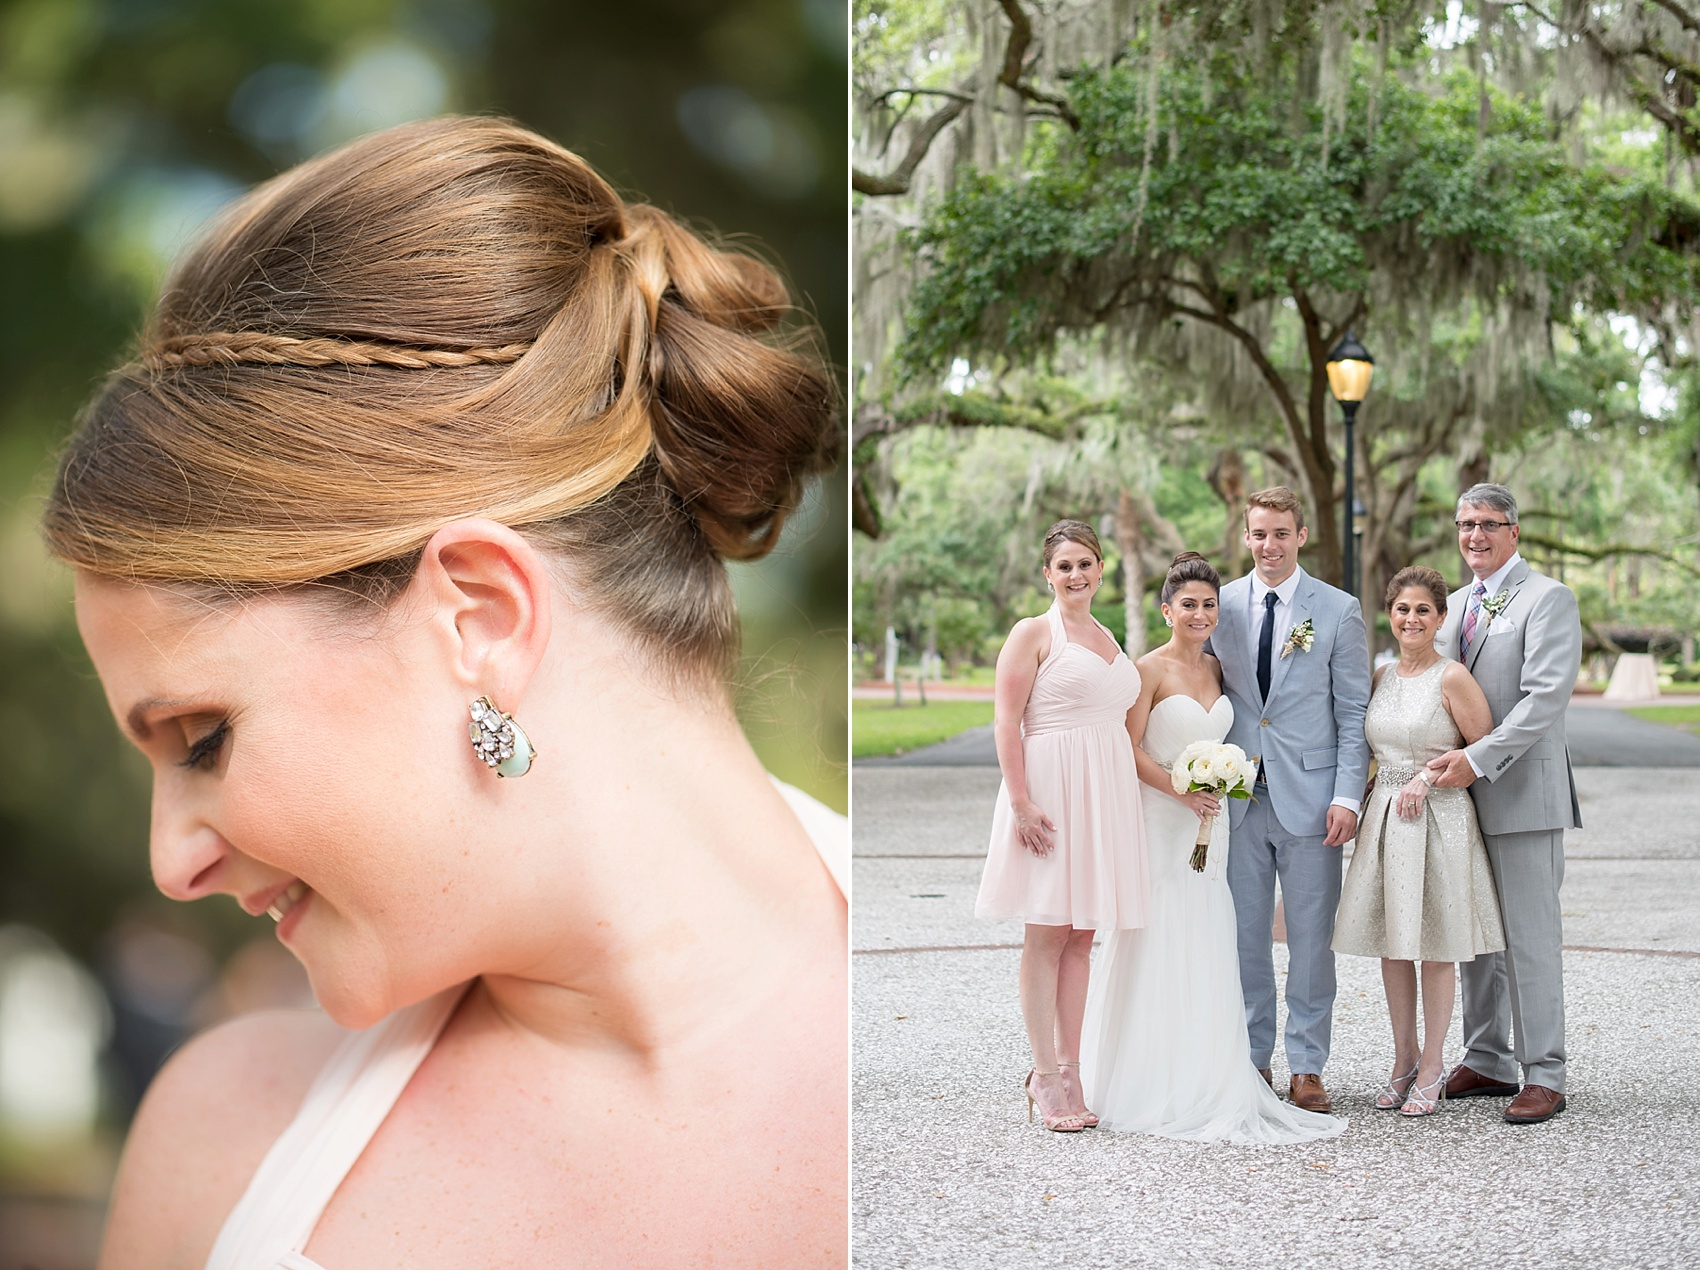 Bridesmaids in short pink Bill Levkoff dresses with Baby's Breath and Magnolia Leaf bouquets, and Anthropologie earrings. Wedding party at Haig Point, South Carolina, off the coast of Hilton Head. Photos by Mikkel Paige Photography.